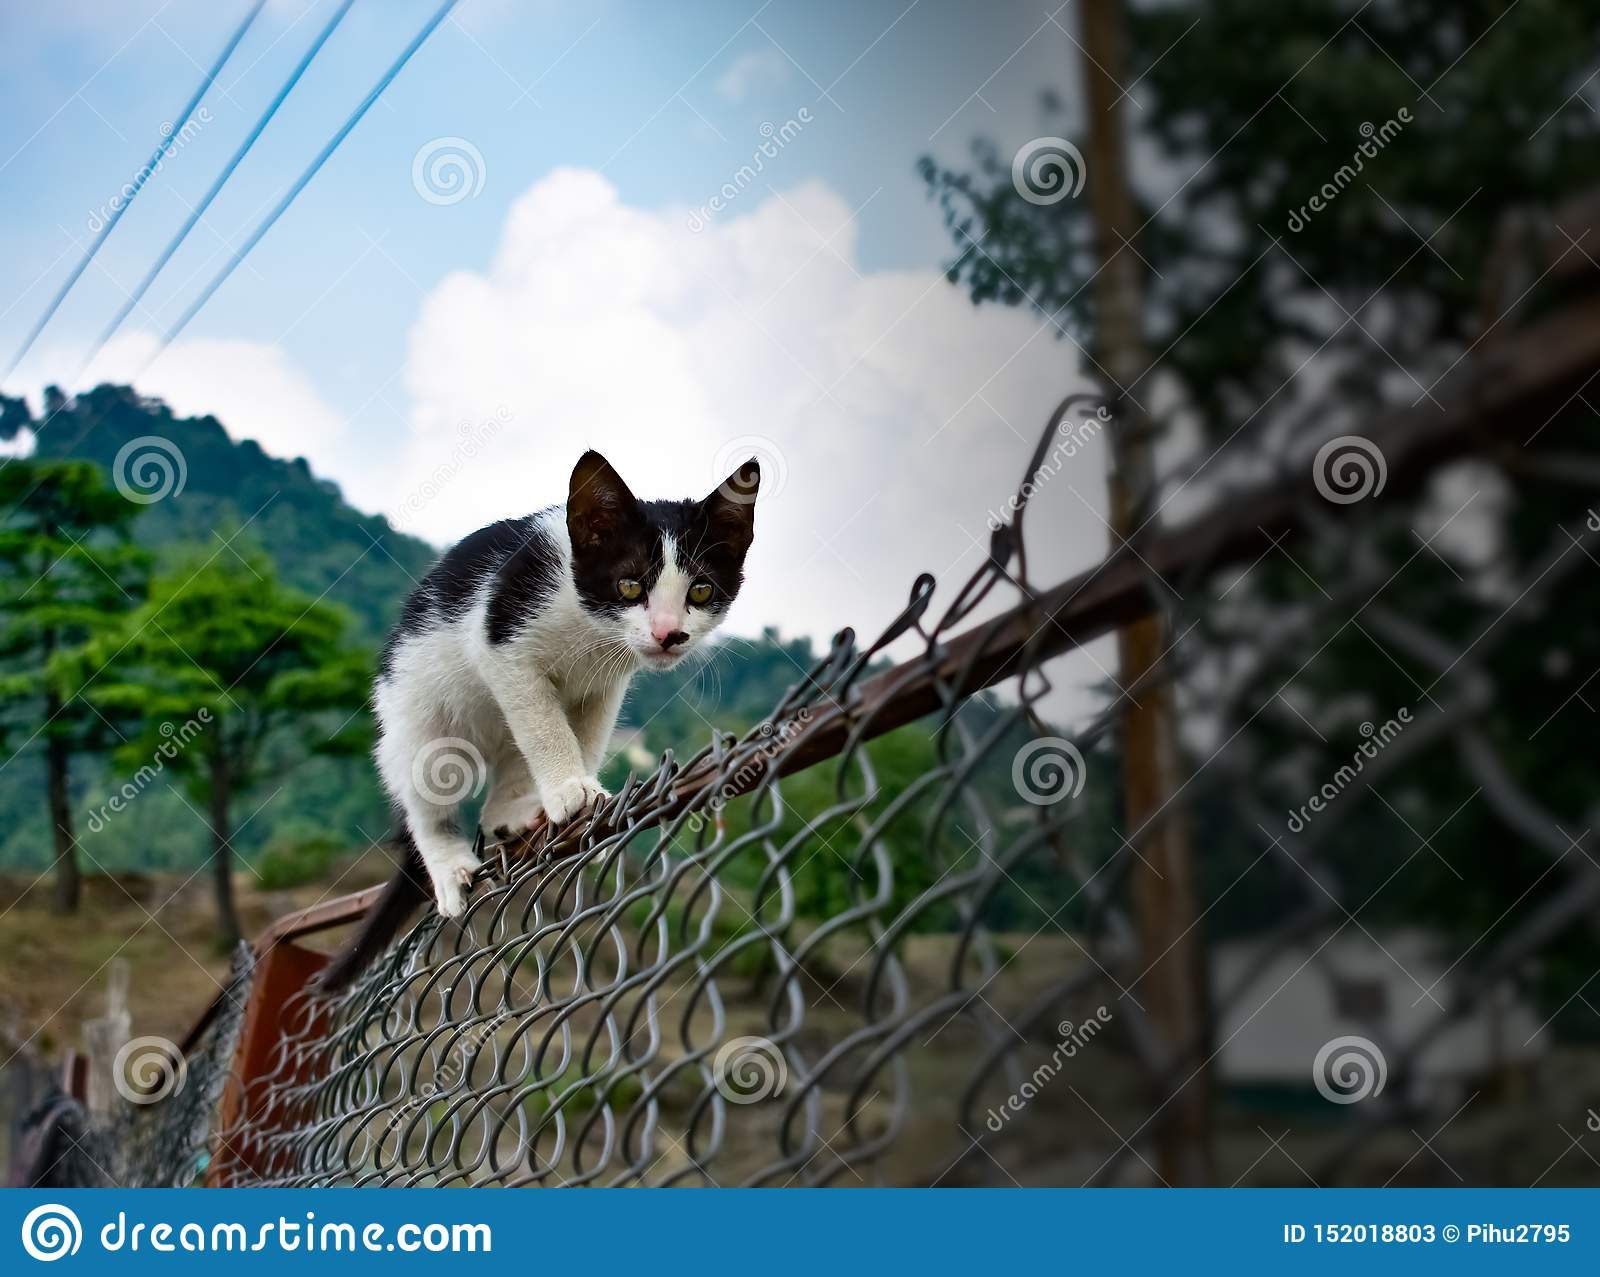 Black and white cute cat walking on the fence in the garden in mountains very funny cat